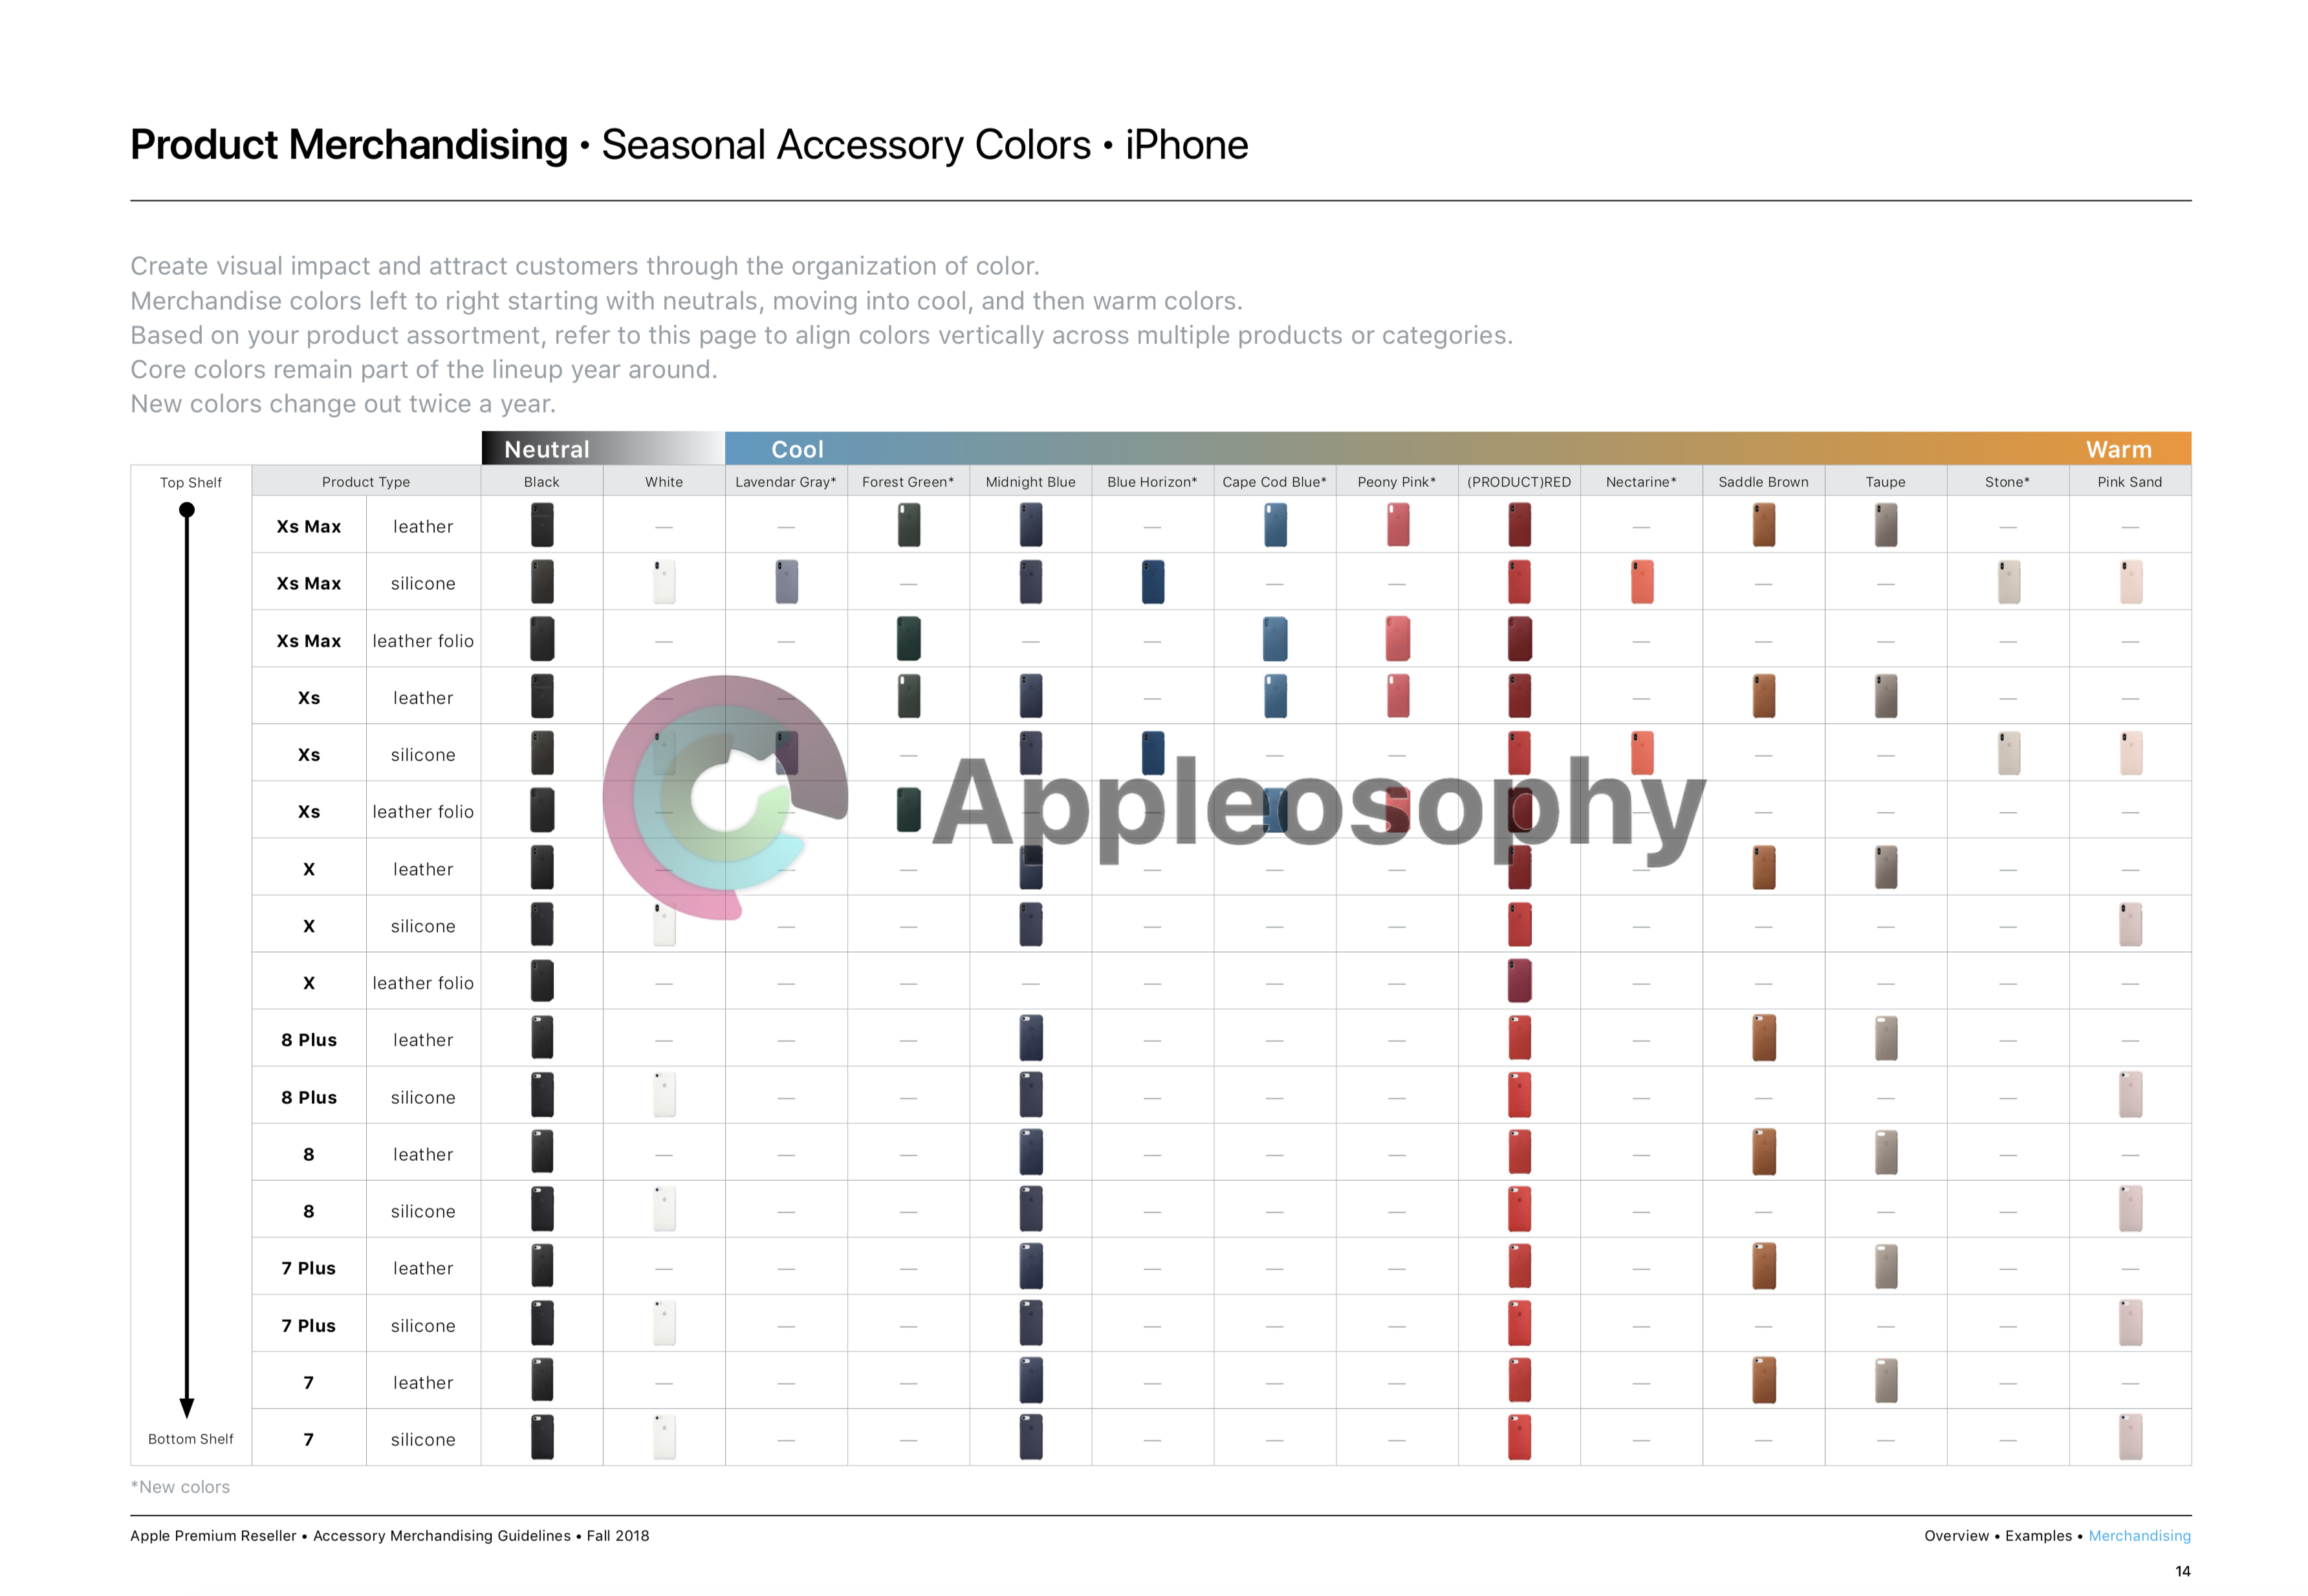 Apple Smart Battery Case for the iPhone XS is lit up in the documentation for Resellers